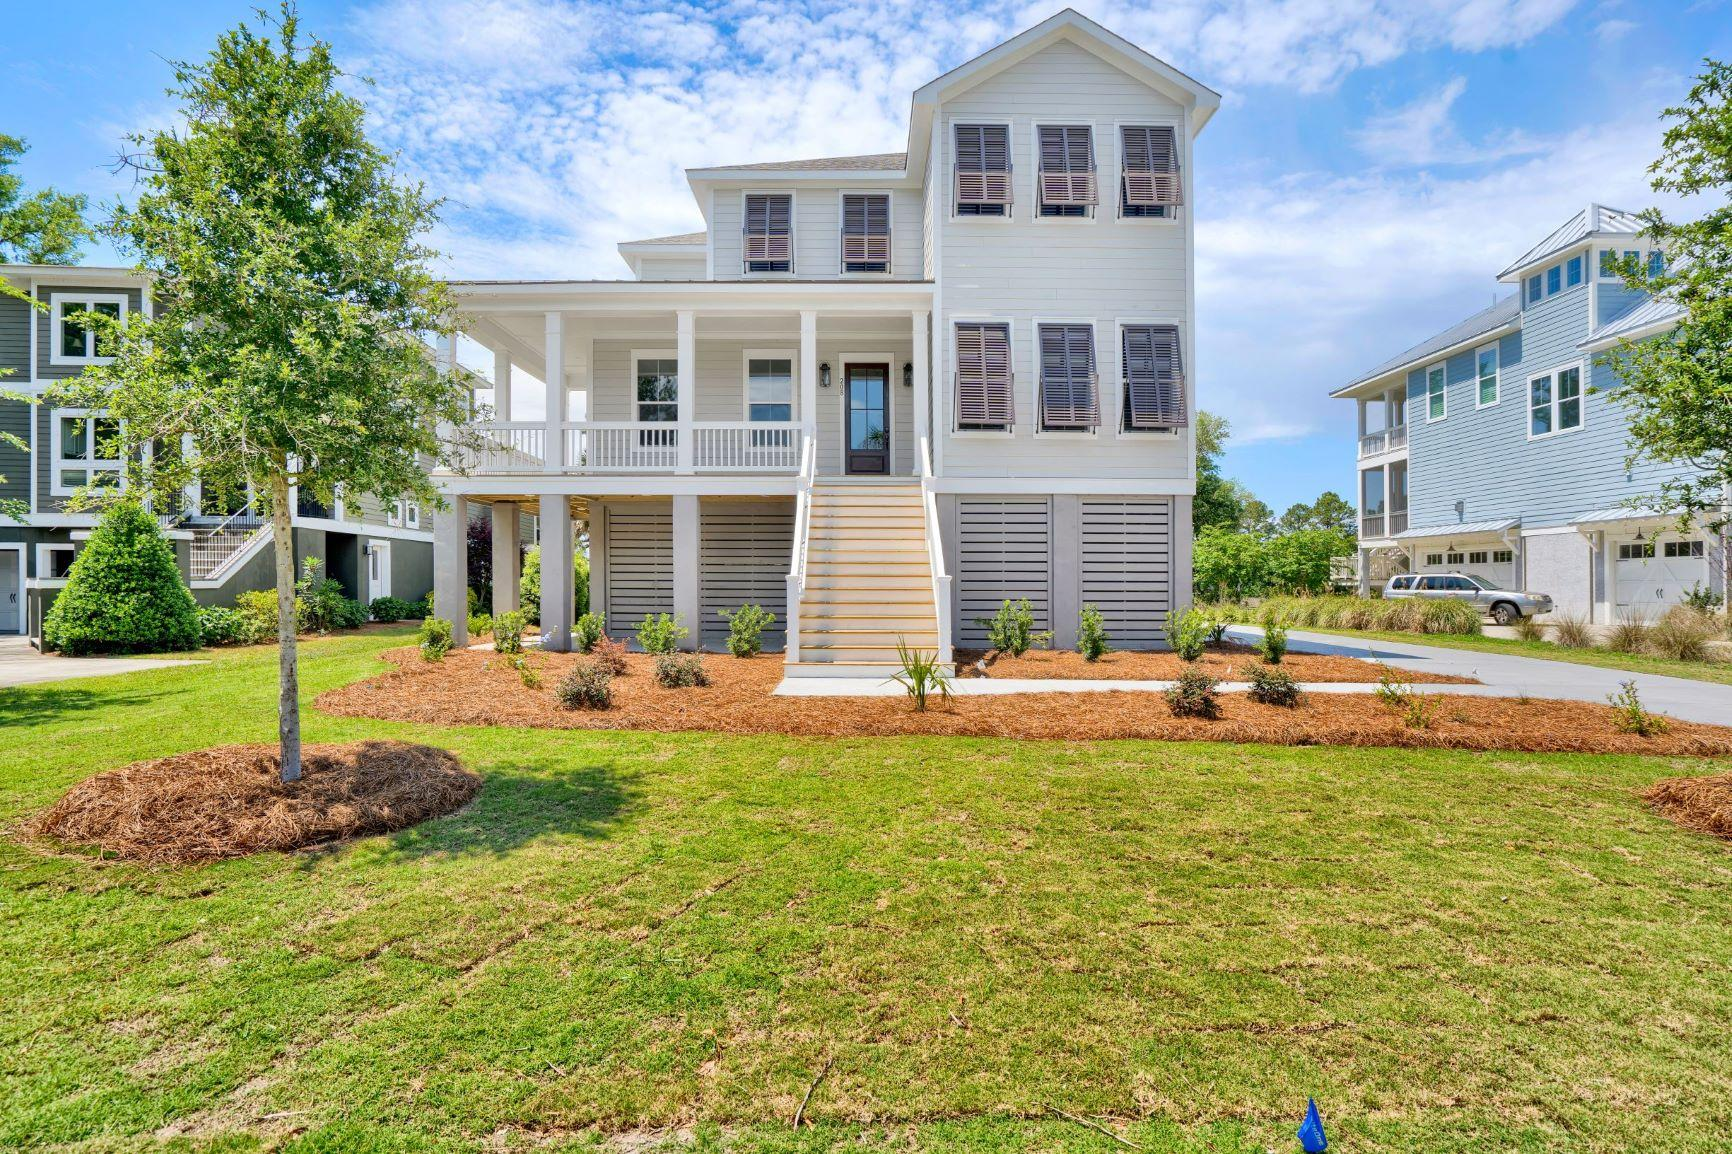 Rivertowne On The Wando Homes For Sale - 2223 Marsh, Mount Pleasant, SC - 4